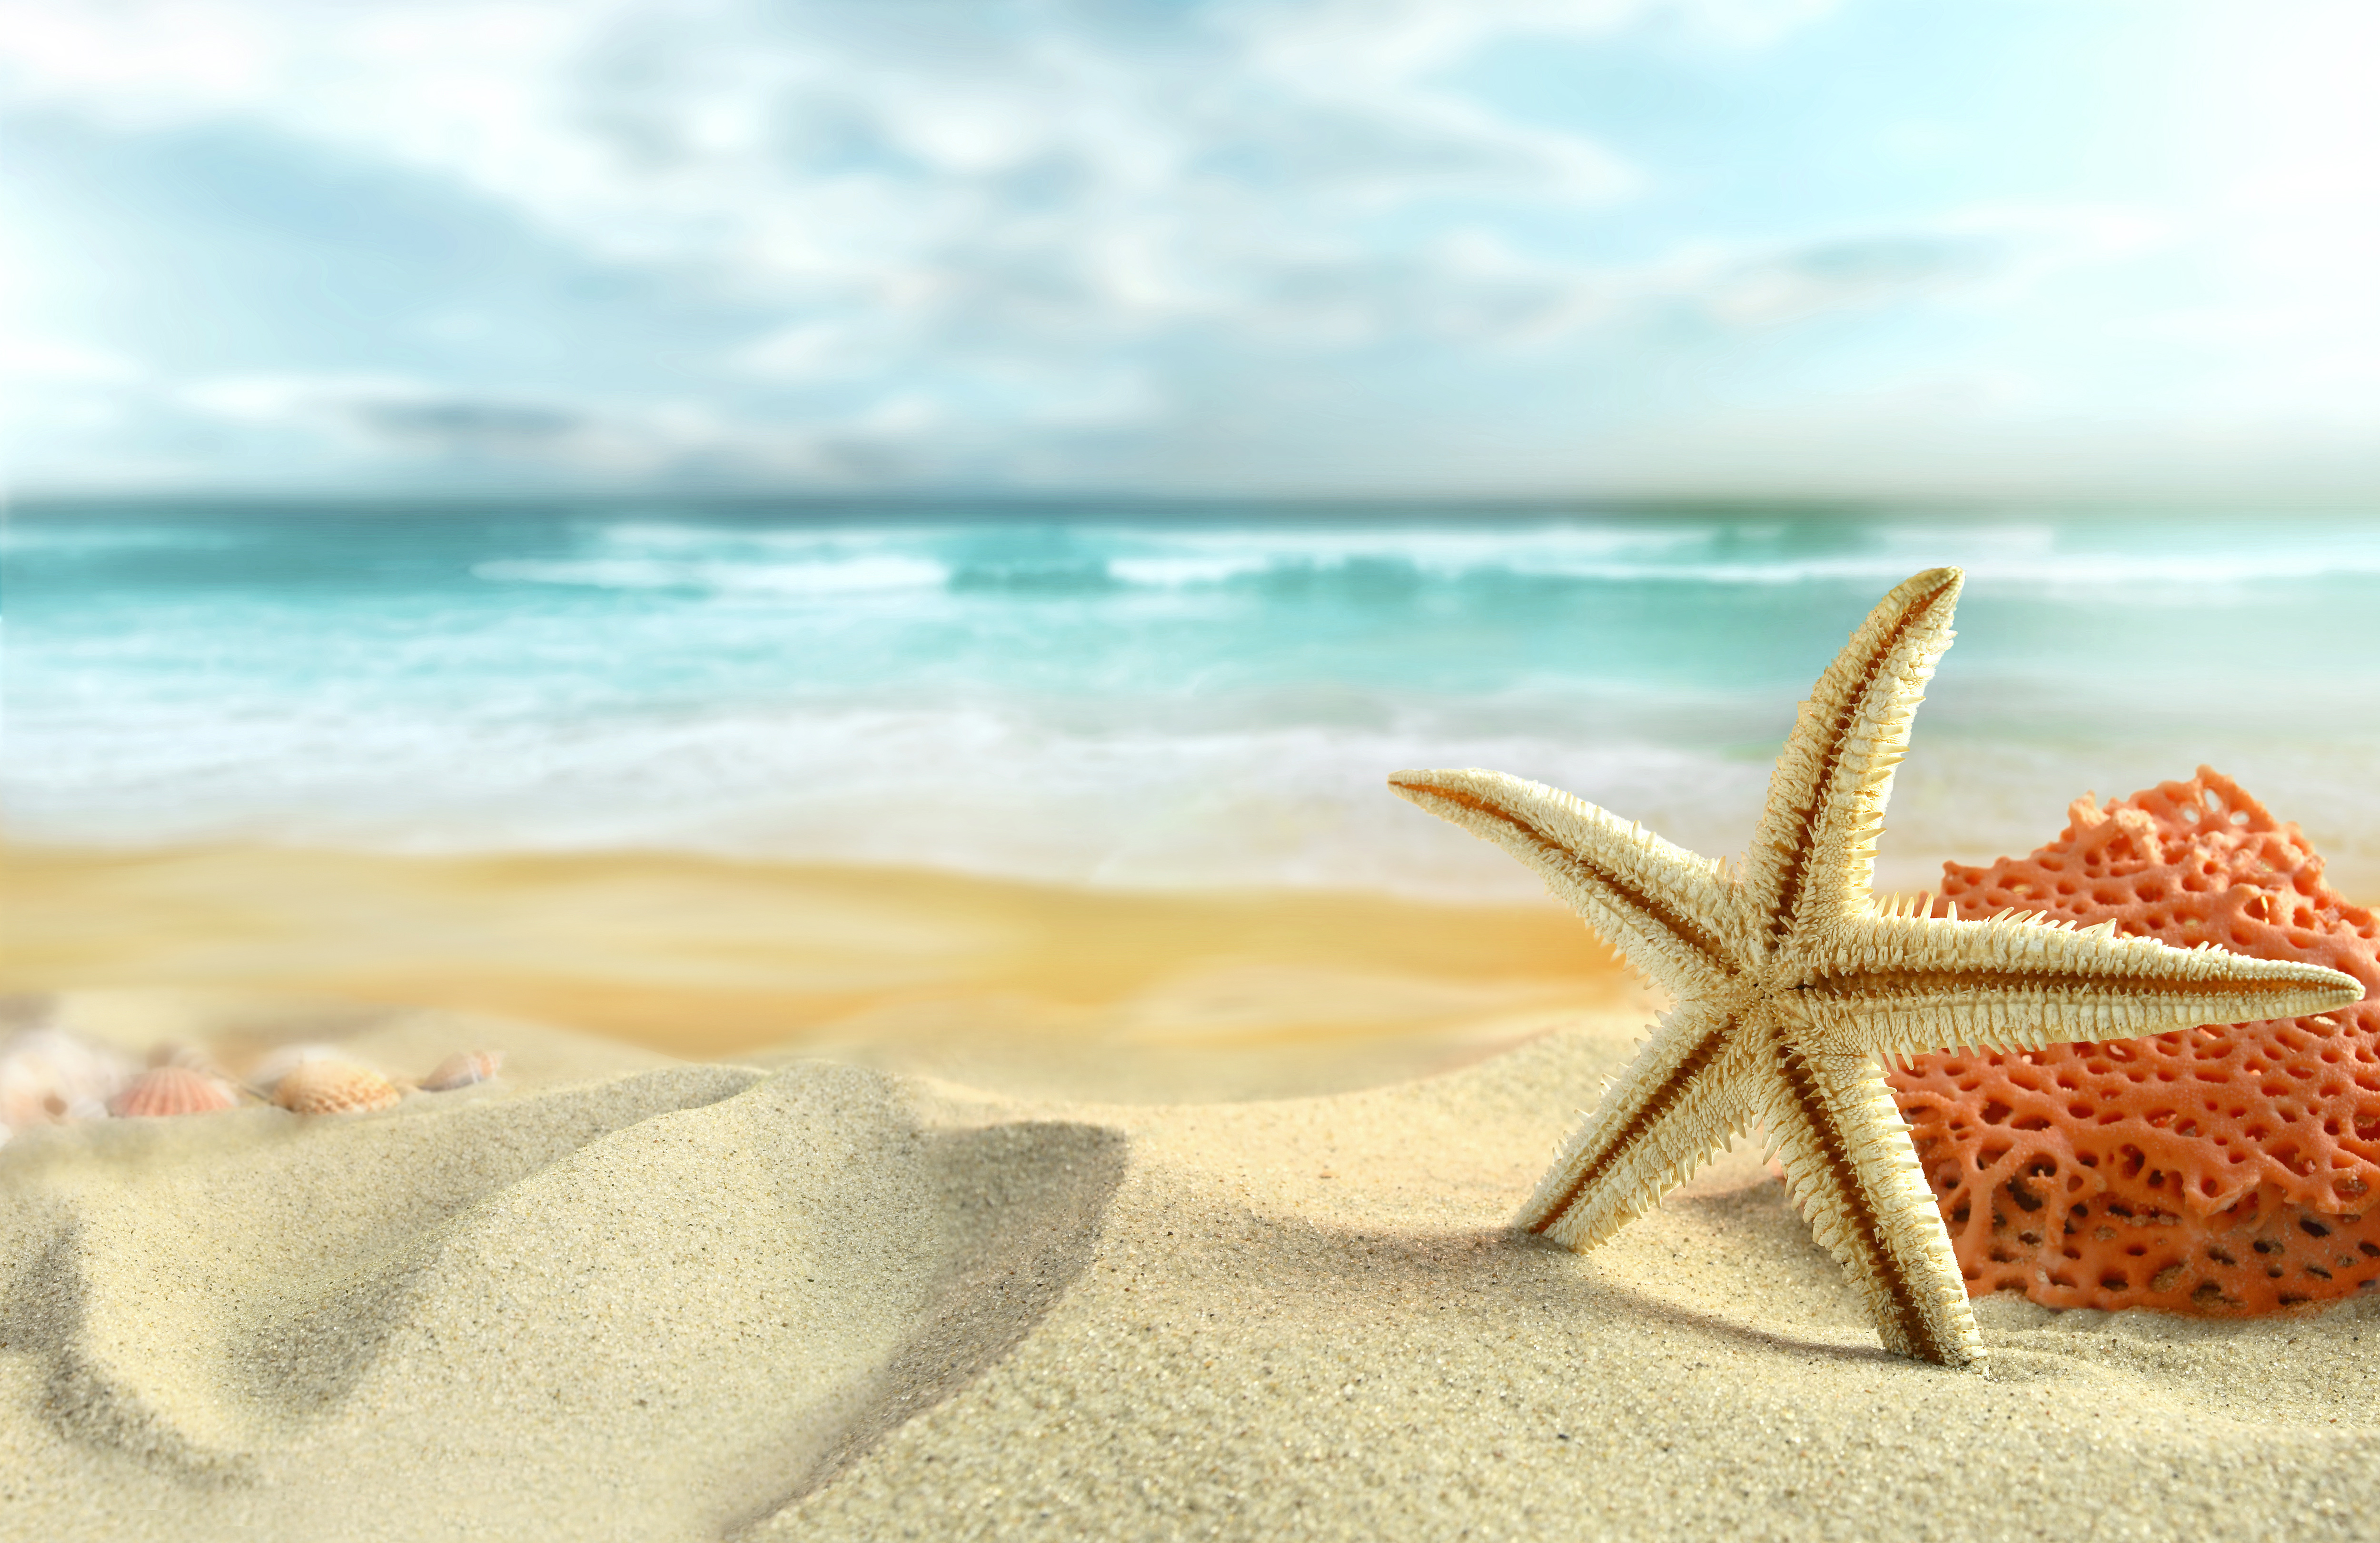 Sea Sand and Shells Background.